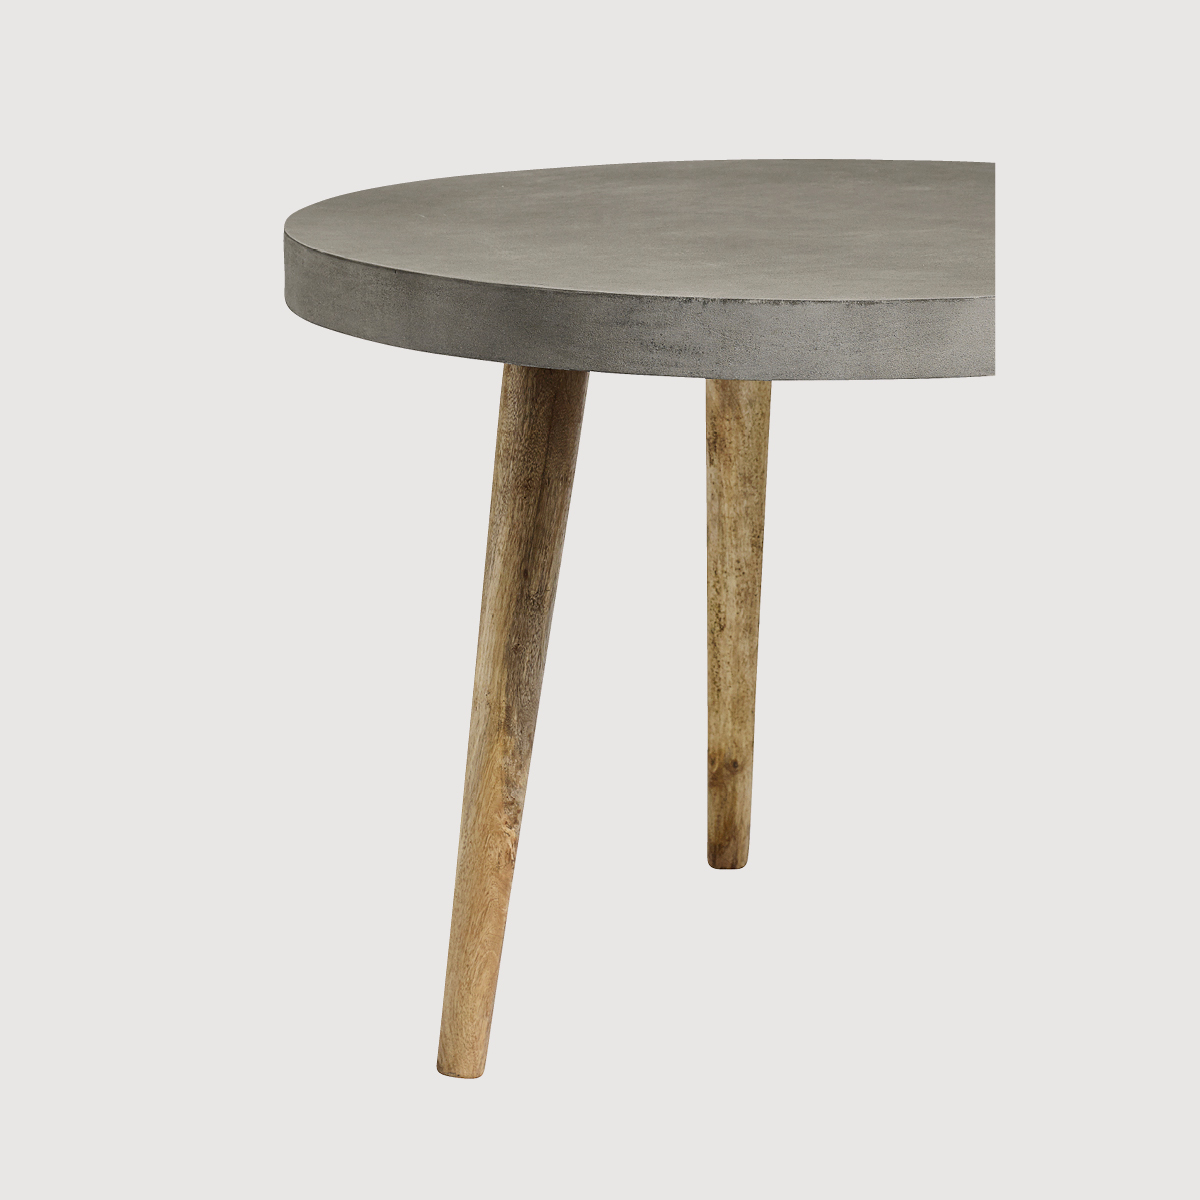 Margie Round Concrete Dining Table – two colours gallery image